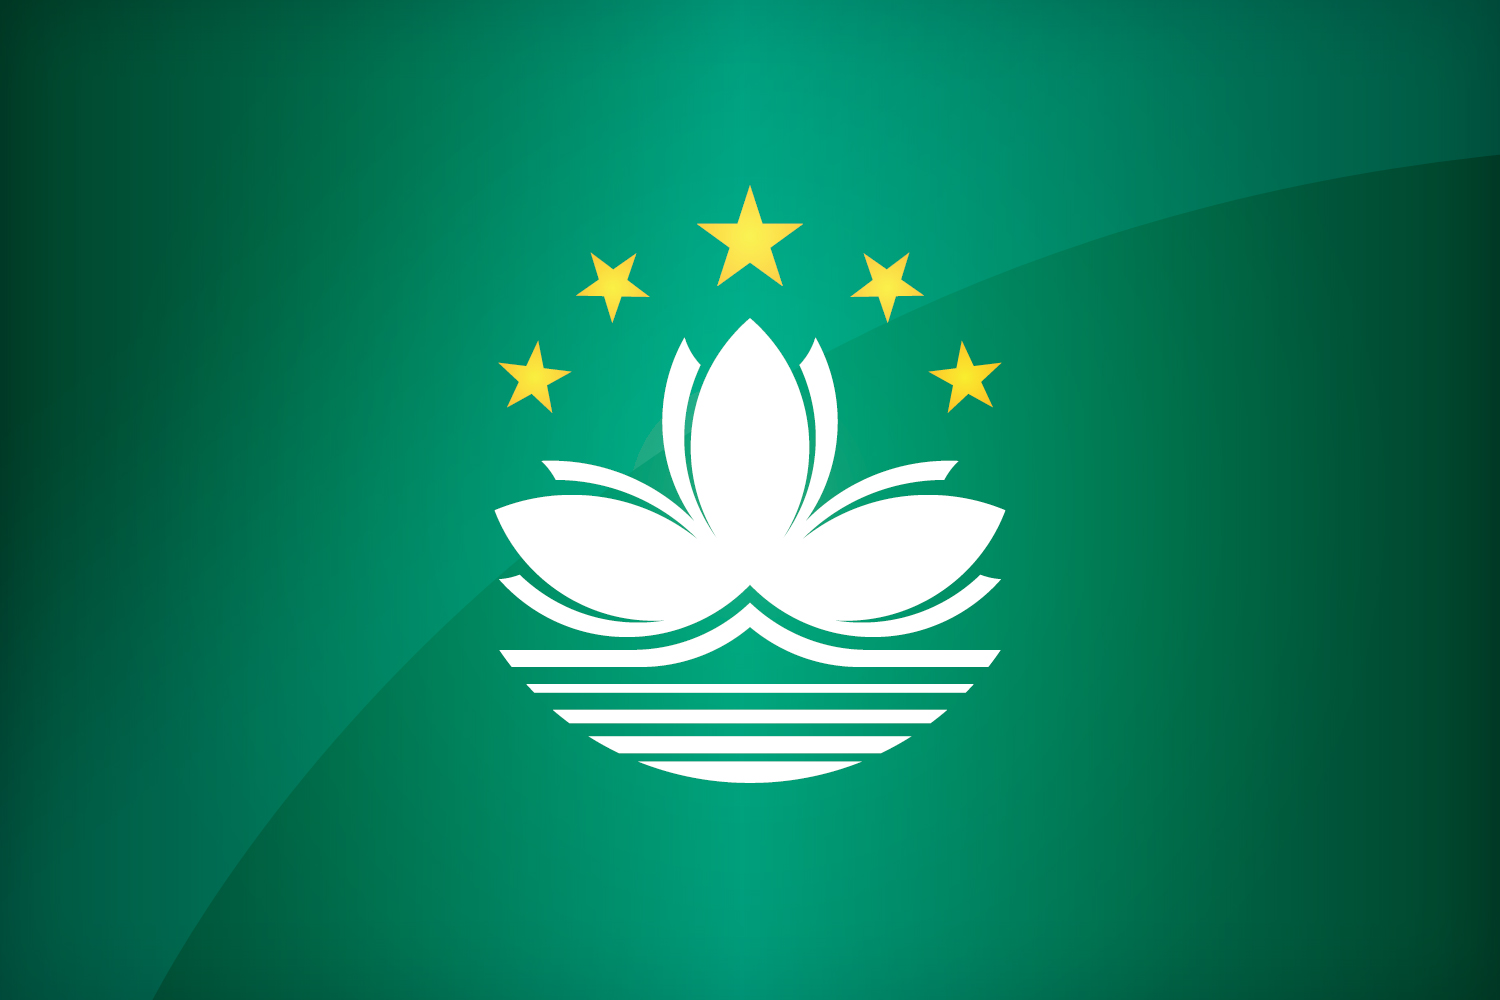 File:Flag of Macau.svg Wikimedia Commons